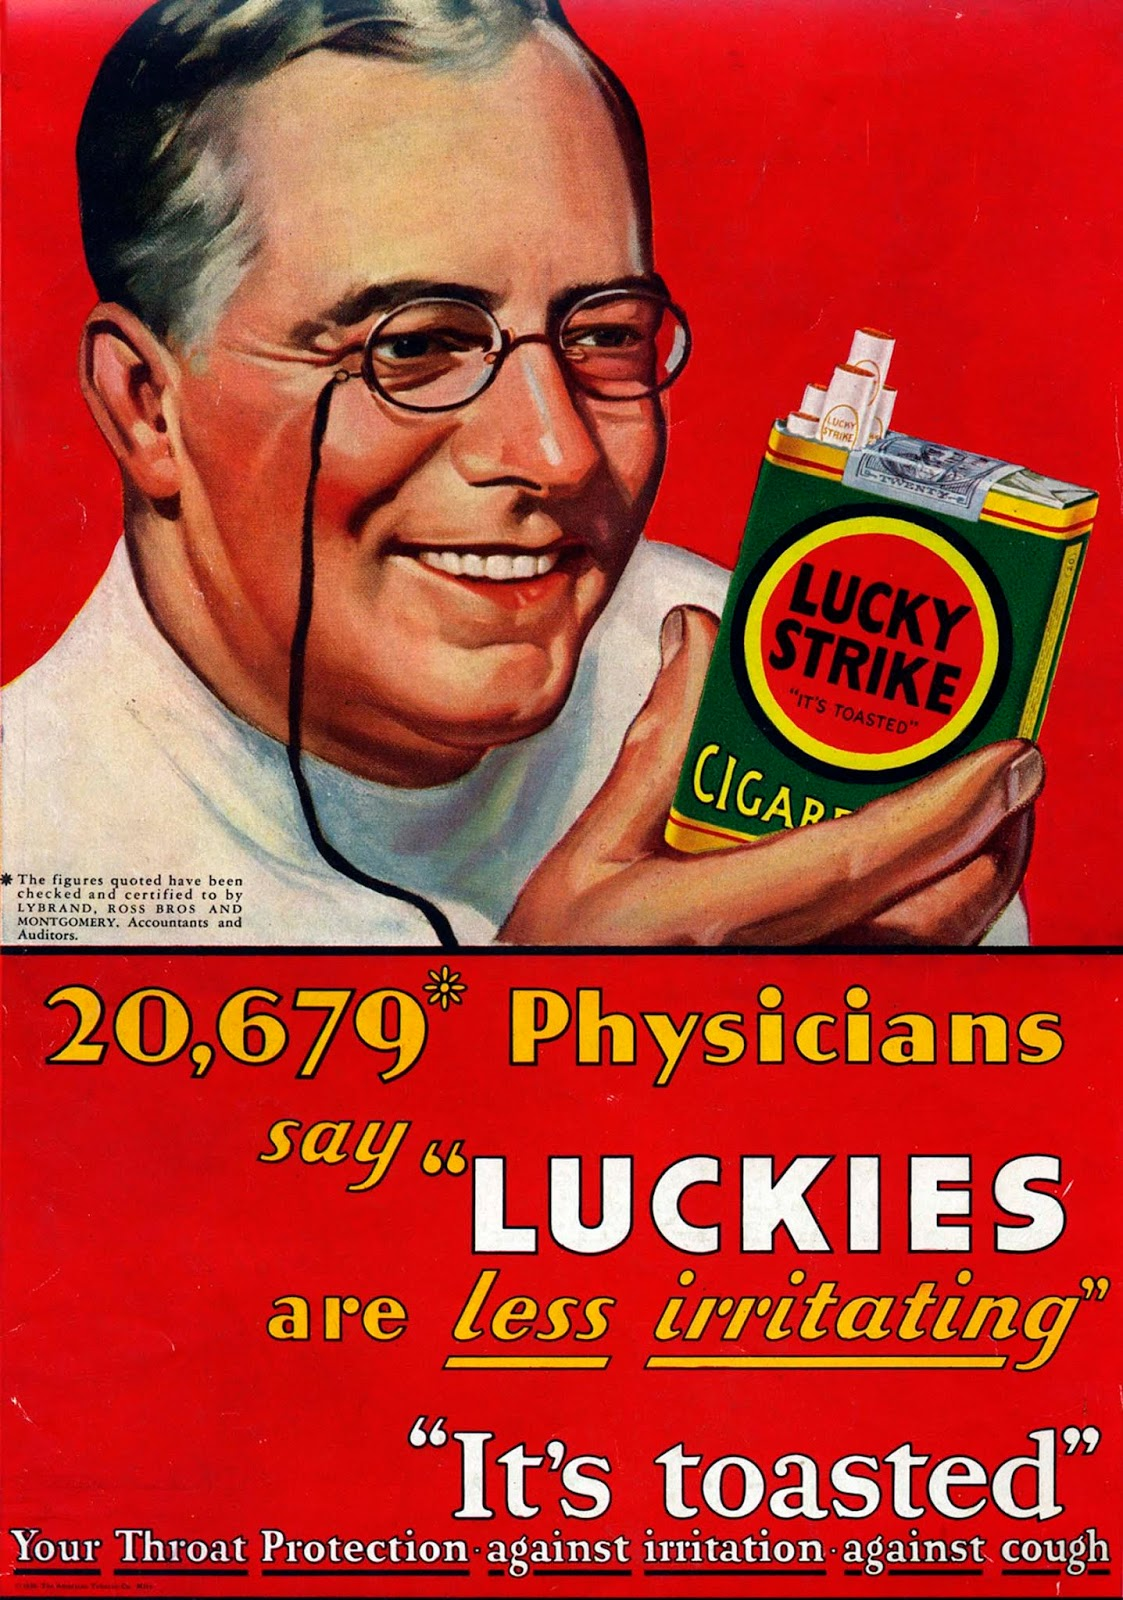 tobacco doctors endorsements advertising Lucky Strike